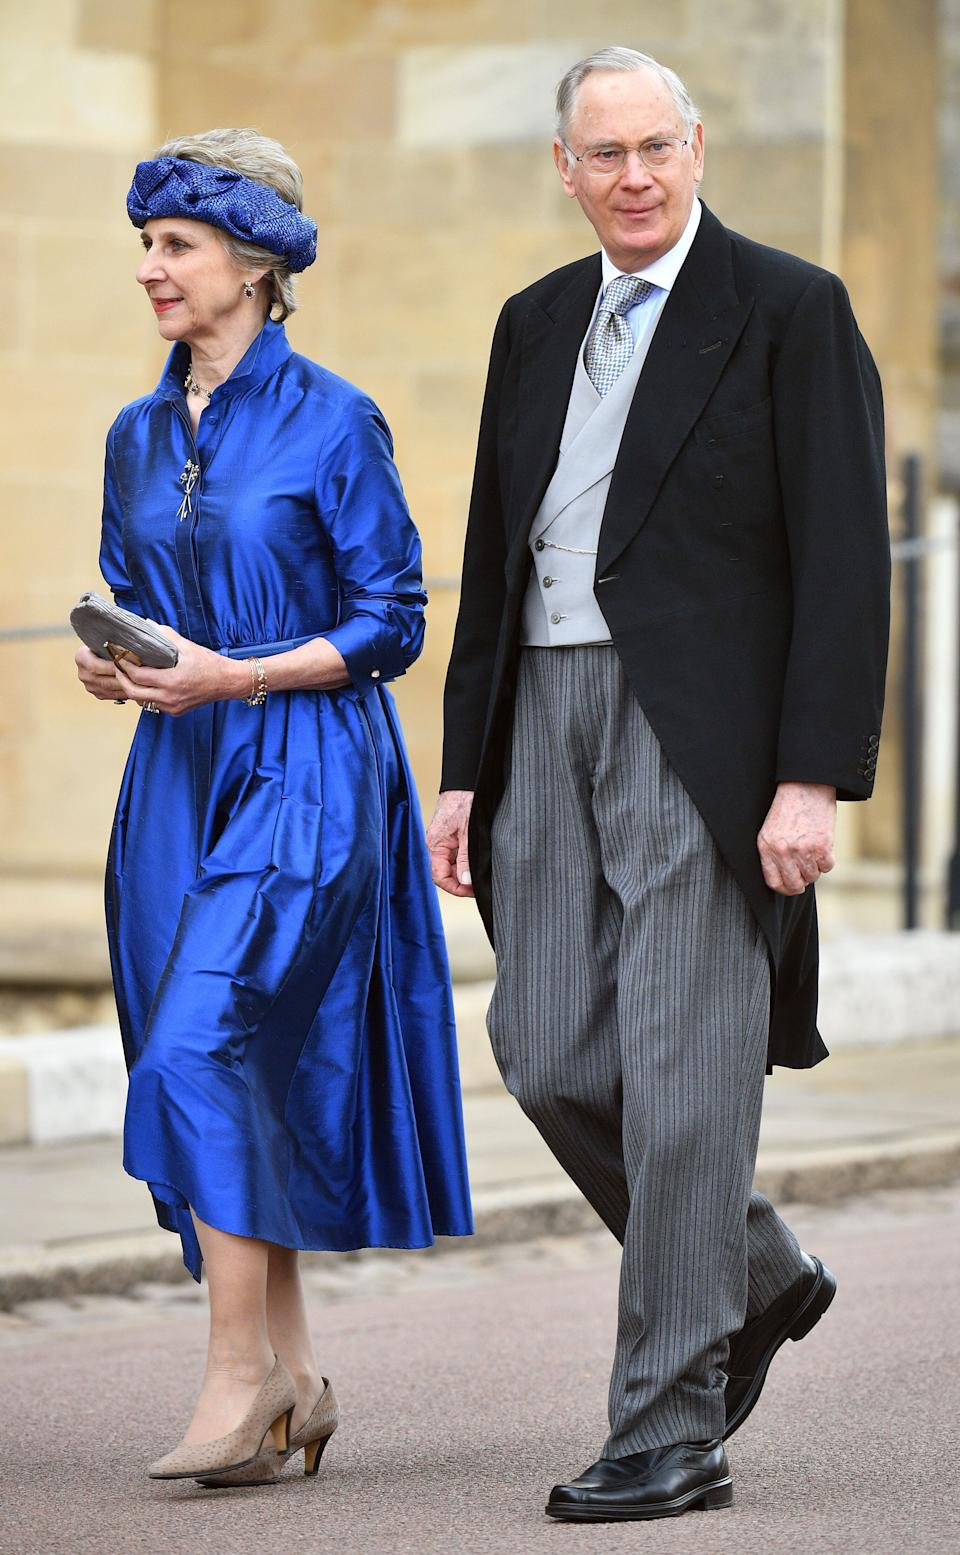 Birgitte, Duchess of Gloucester and Prince Richard, Duke of Gloucester attend the wedding of Lady Gabriella Windsor and Thomas Kingston [Photo: Getty]